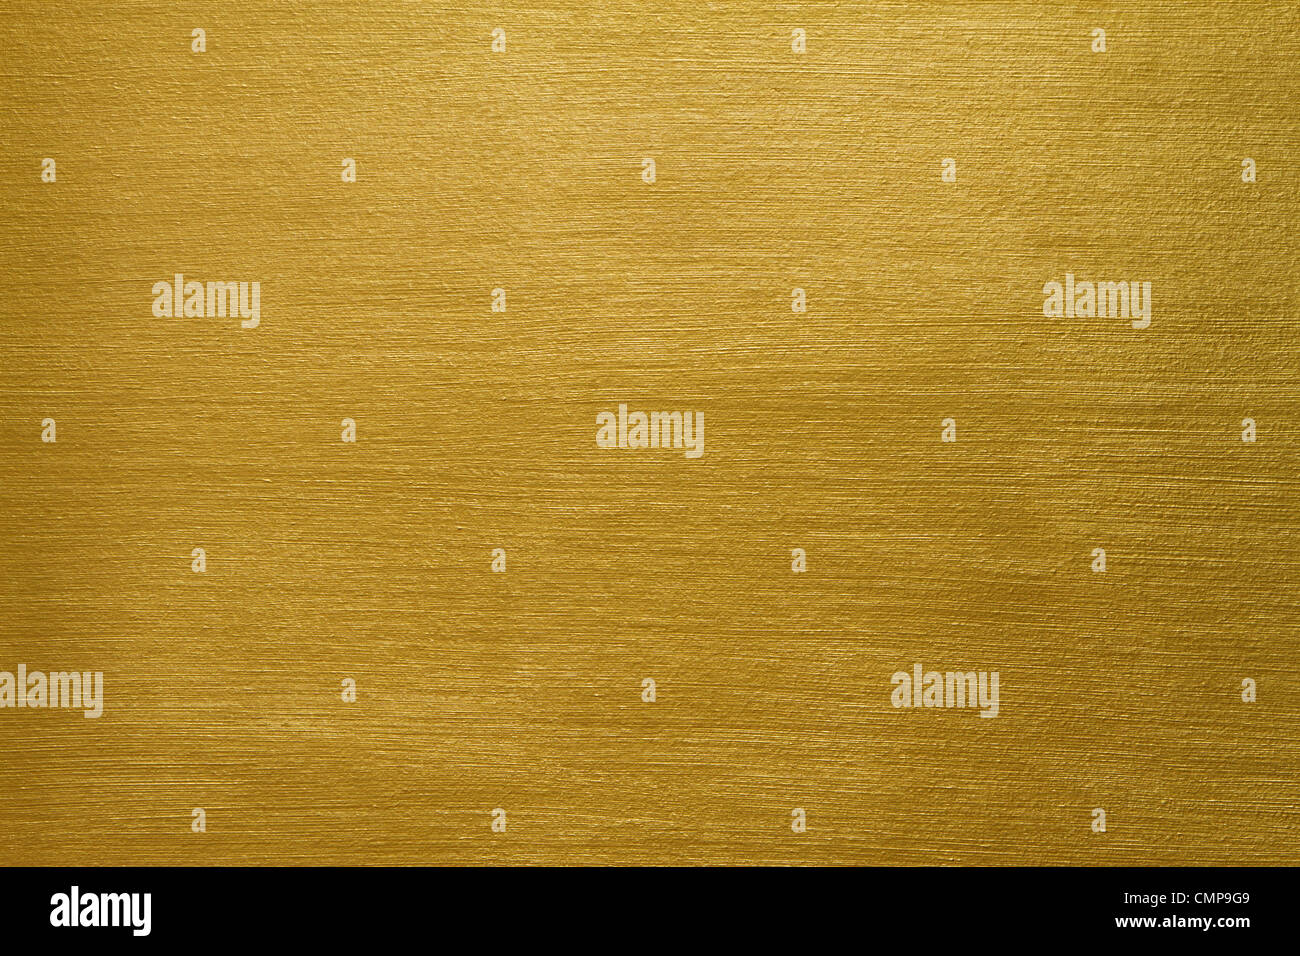 texture of a cement wall covered with gold paint with long strokes - Stock Image